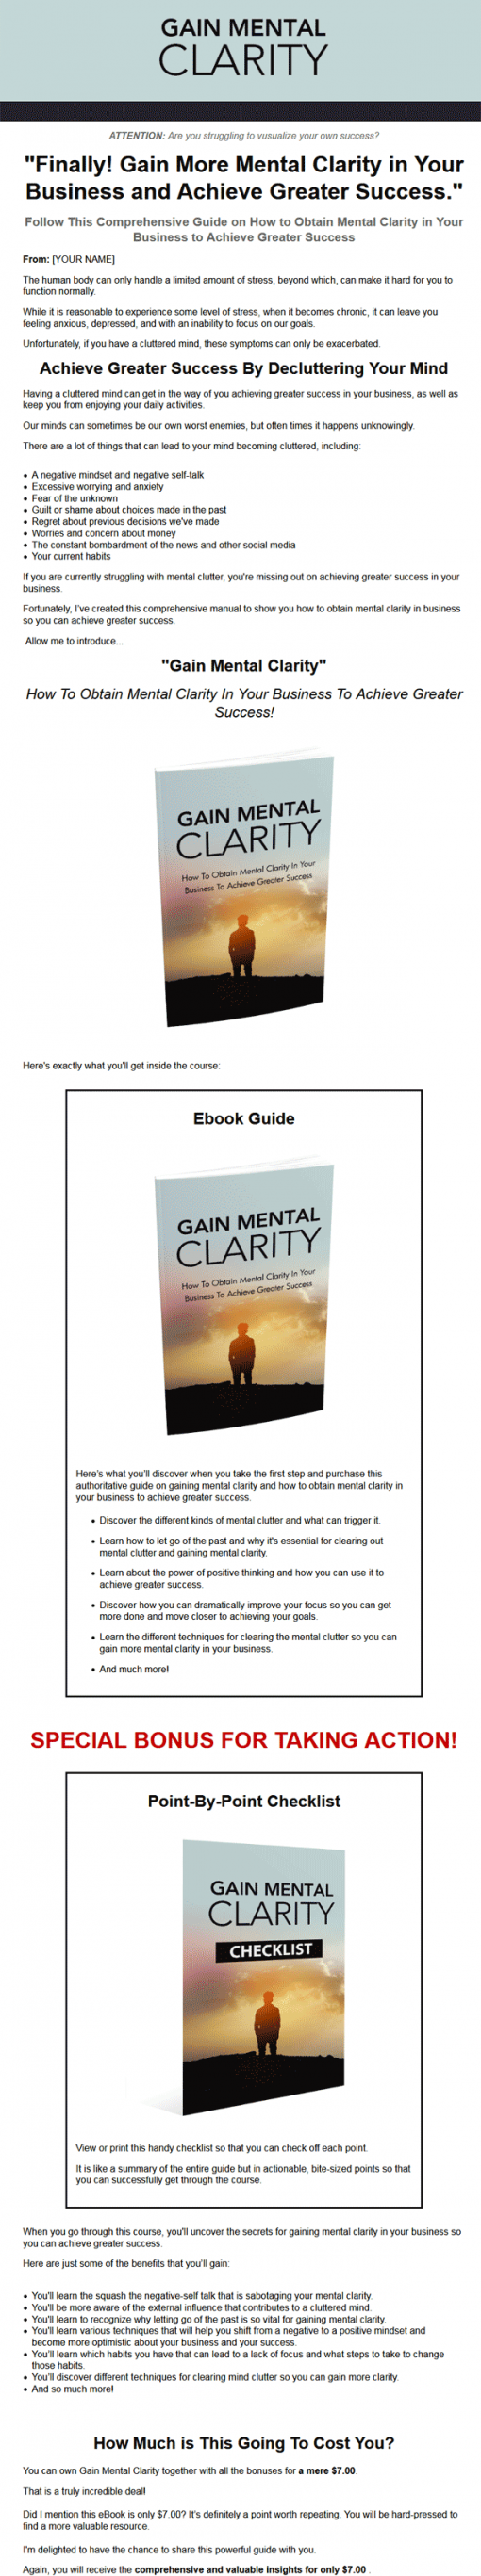 Gain Mental Clarity Ebook with Master Resale Rights